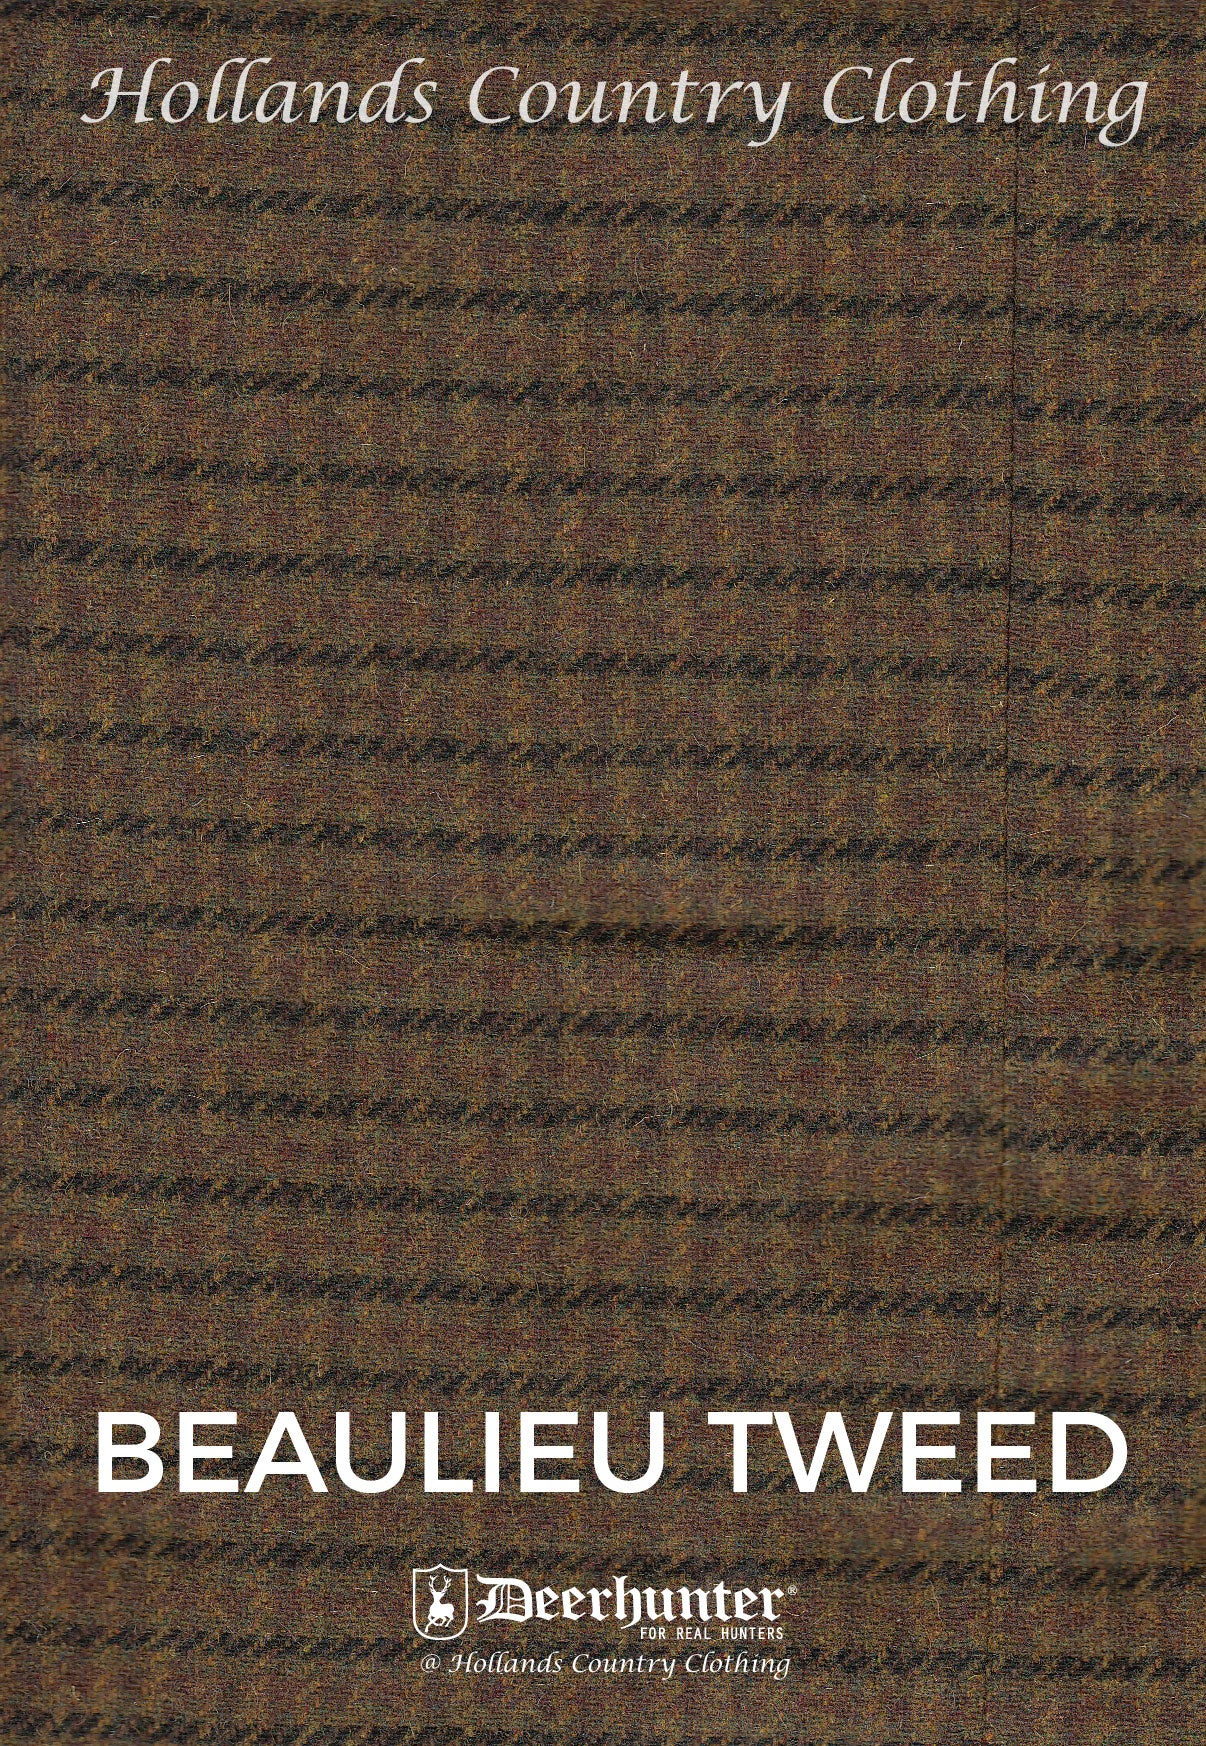 Classic tweed pattern of Chestnut browns, with elements of rusts, blacks and golds.   A substantial cap with great looks for years of wear